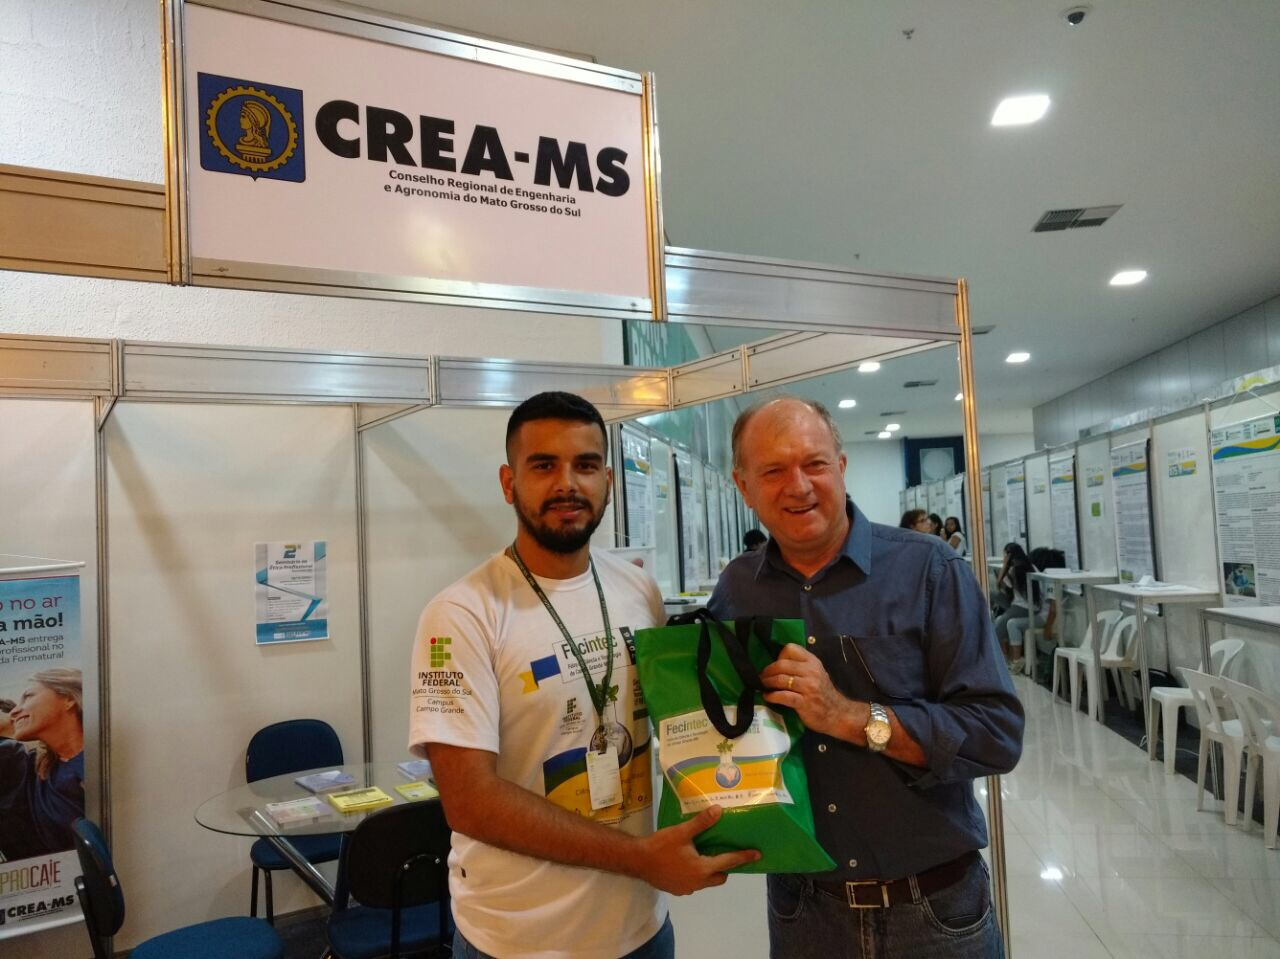 Presidente do Crea-MS, eng. agr. Dirson Freitag, participa do evento